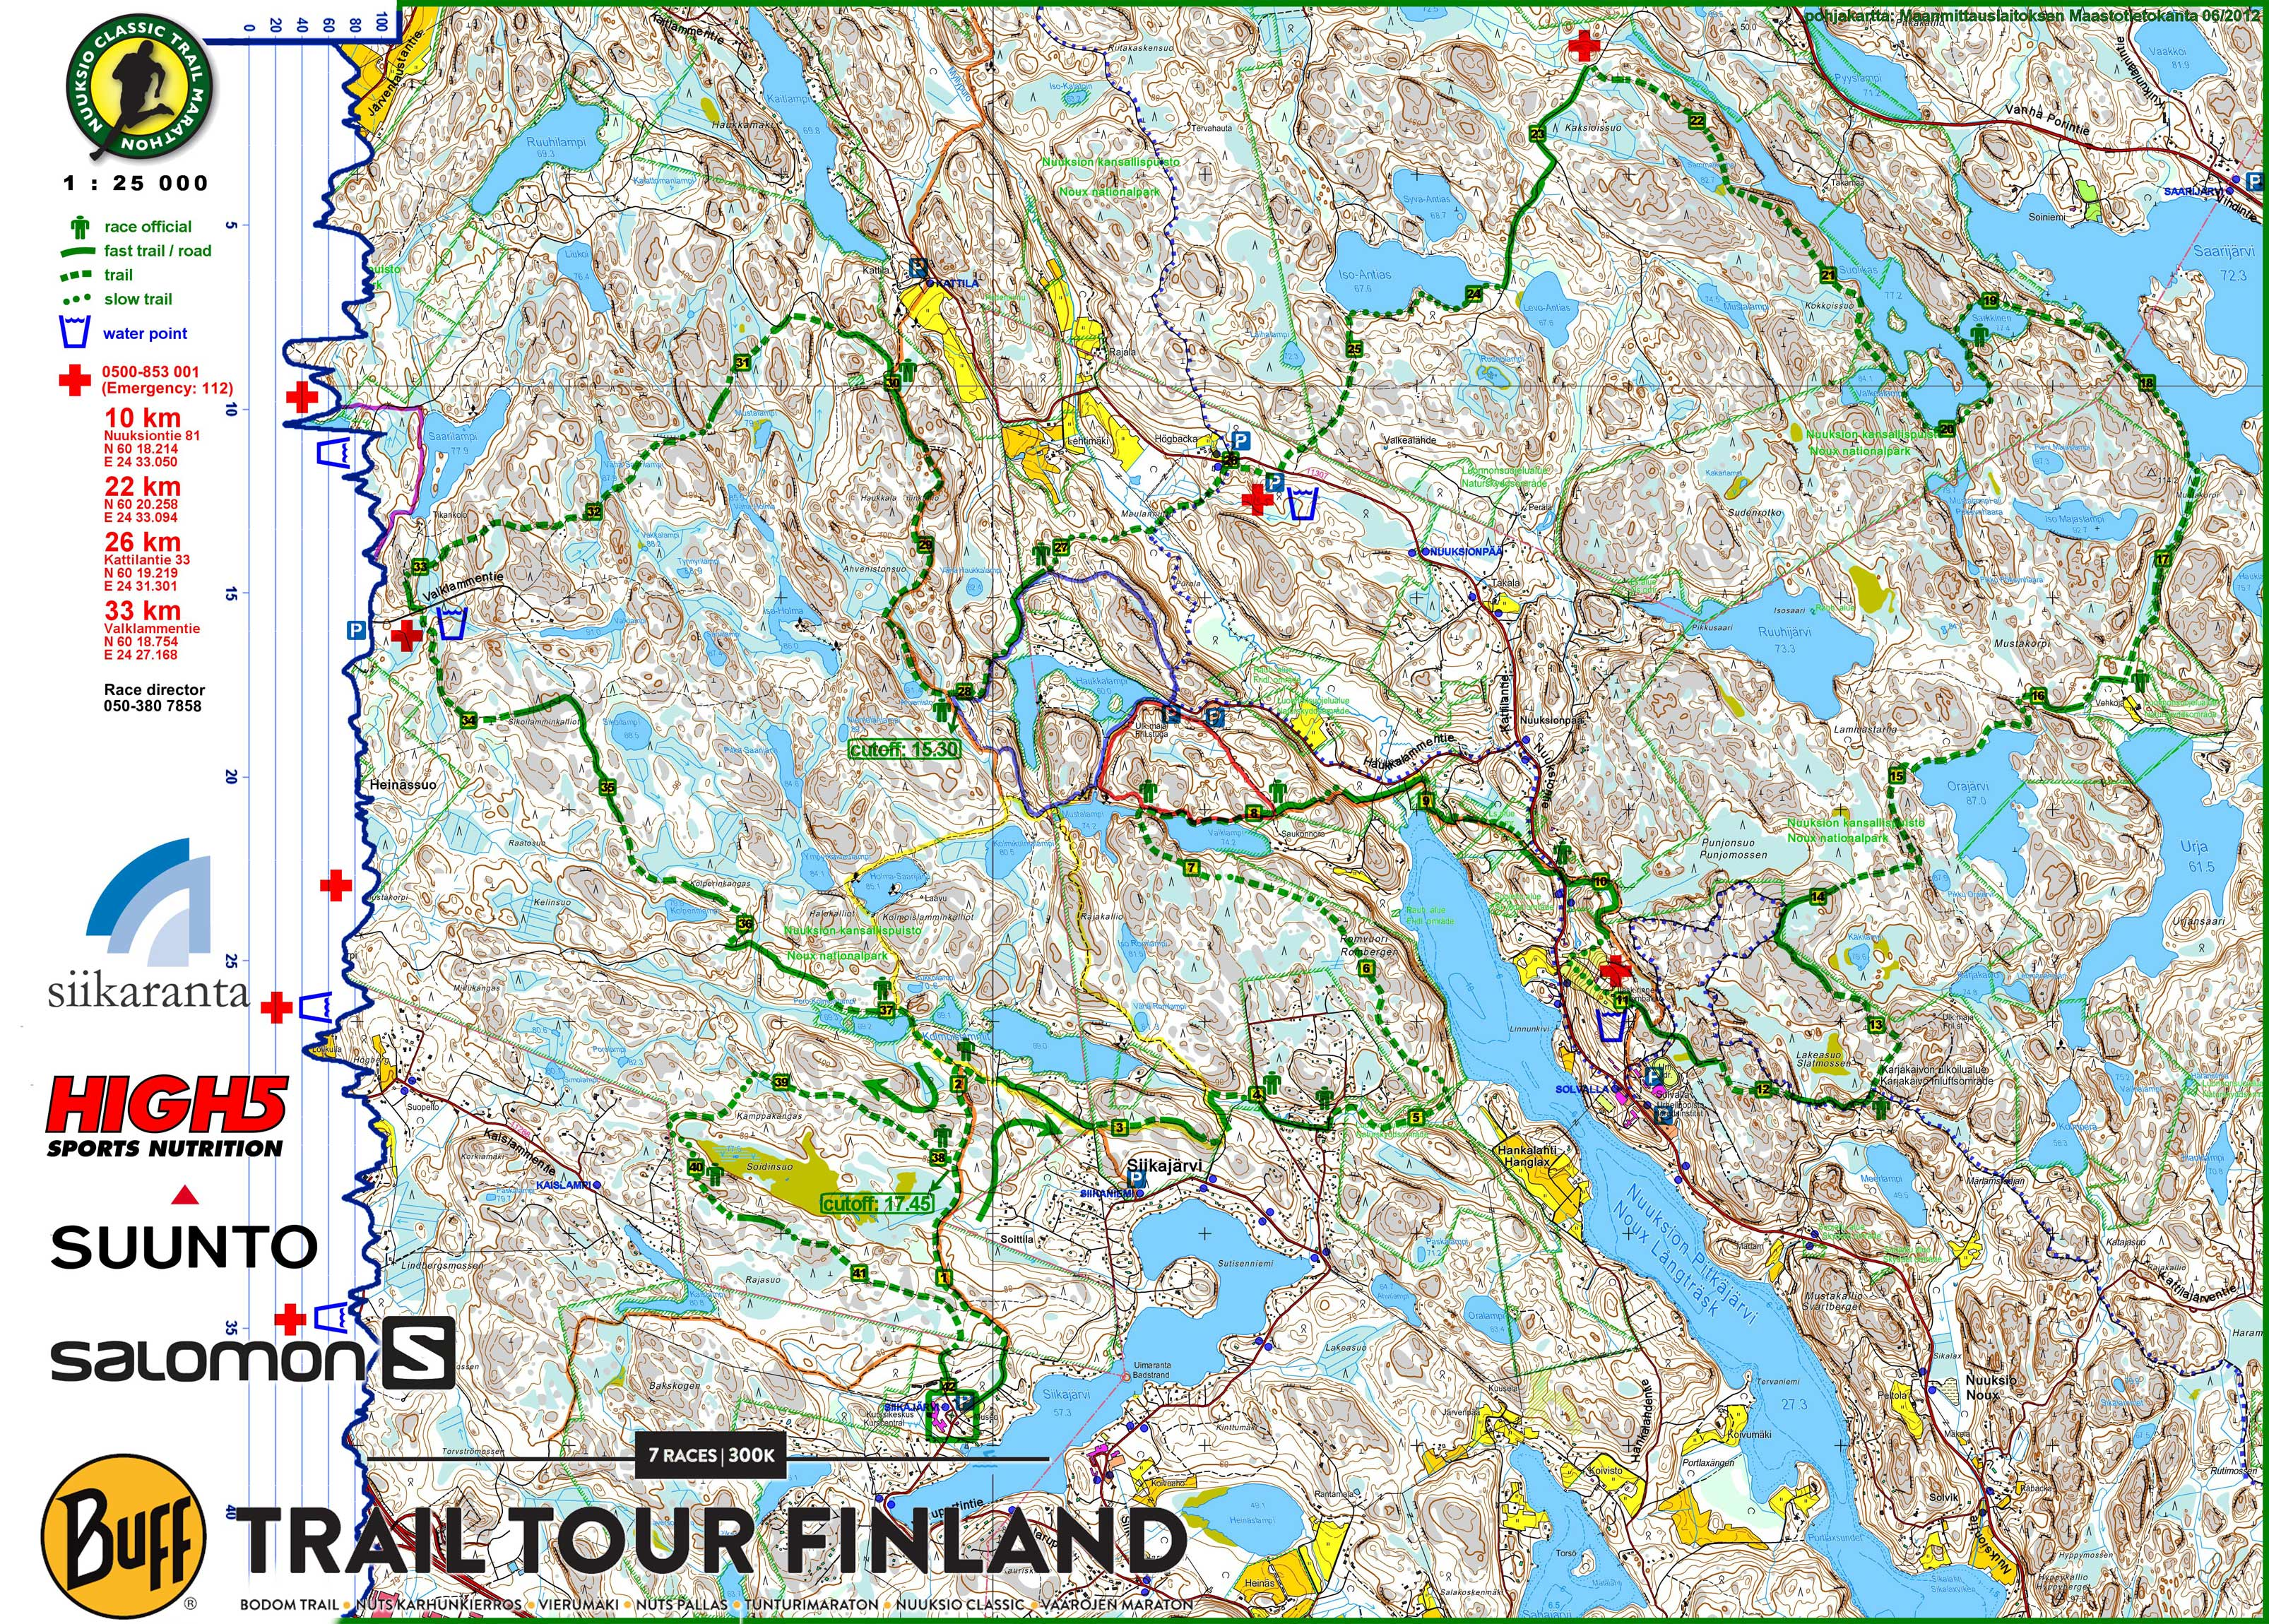 Nuuksio classic trail marathon 2016 september 3rd 2016 request map deleted gumiabroncs Image collections